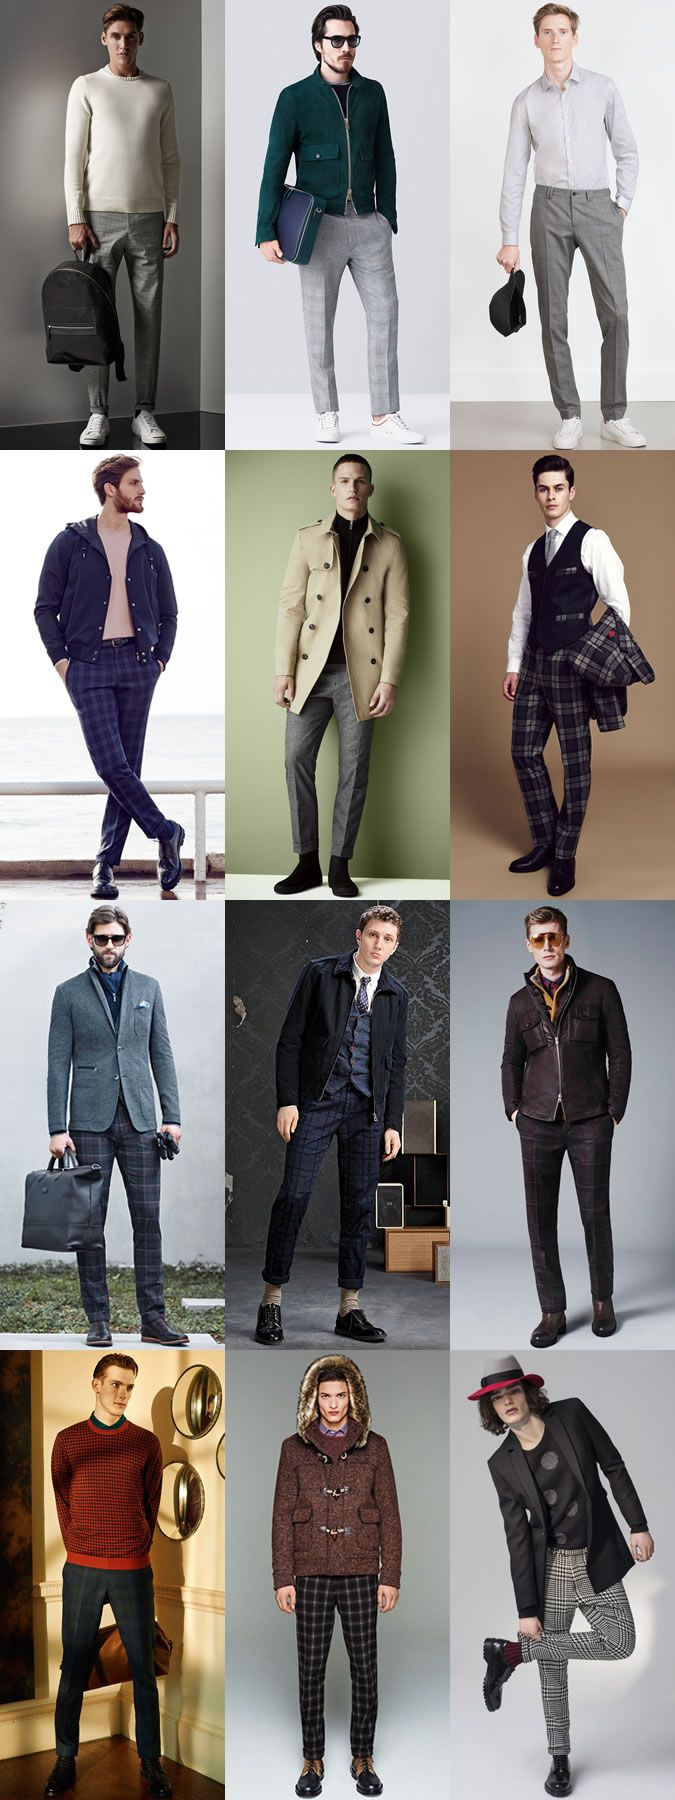 Men's Checked Trousers Outfit Inspiration Lookbook ...